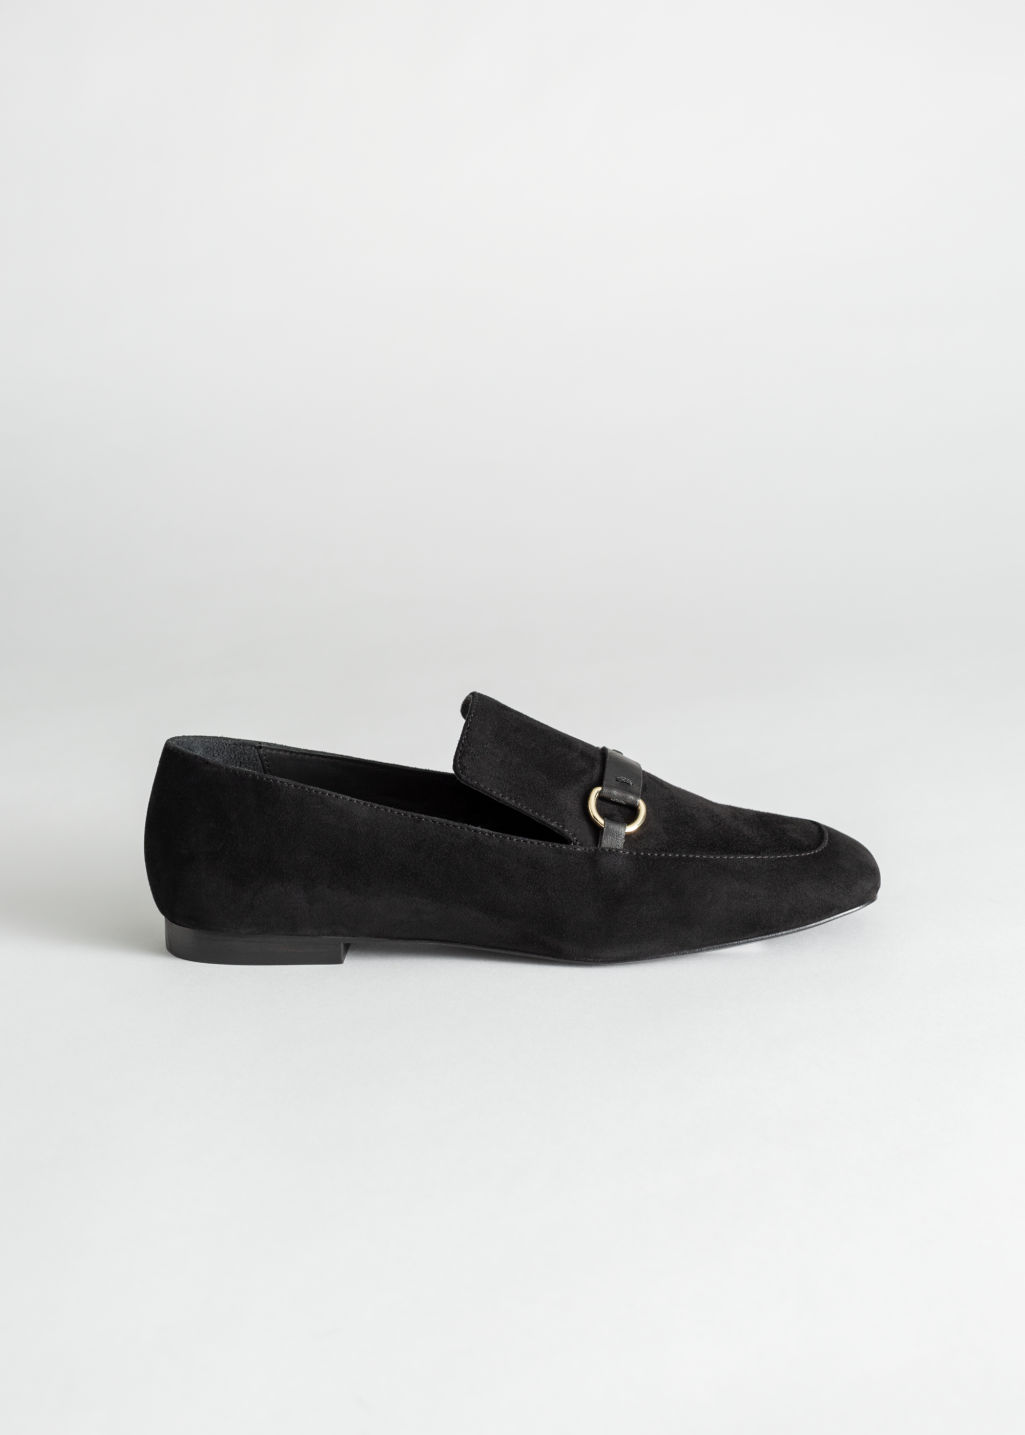 ef2de145868 Square Toe Equestrian Loafer - Black - Loafers -   Other Stories